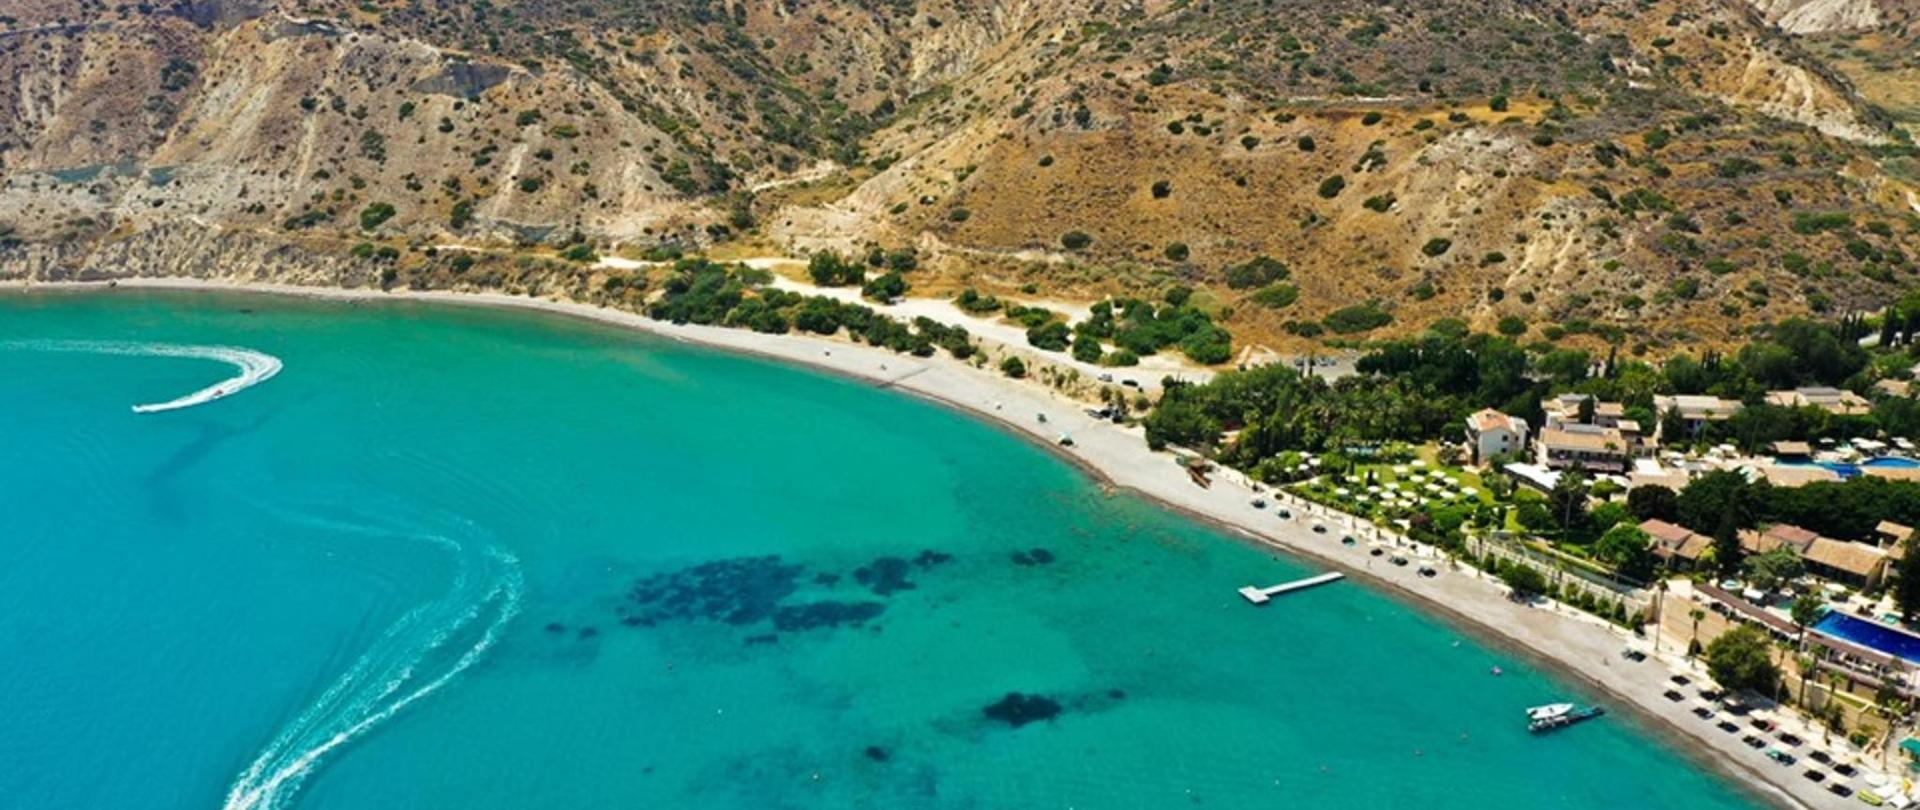 Pissouri Bay.jpg